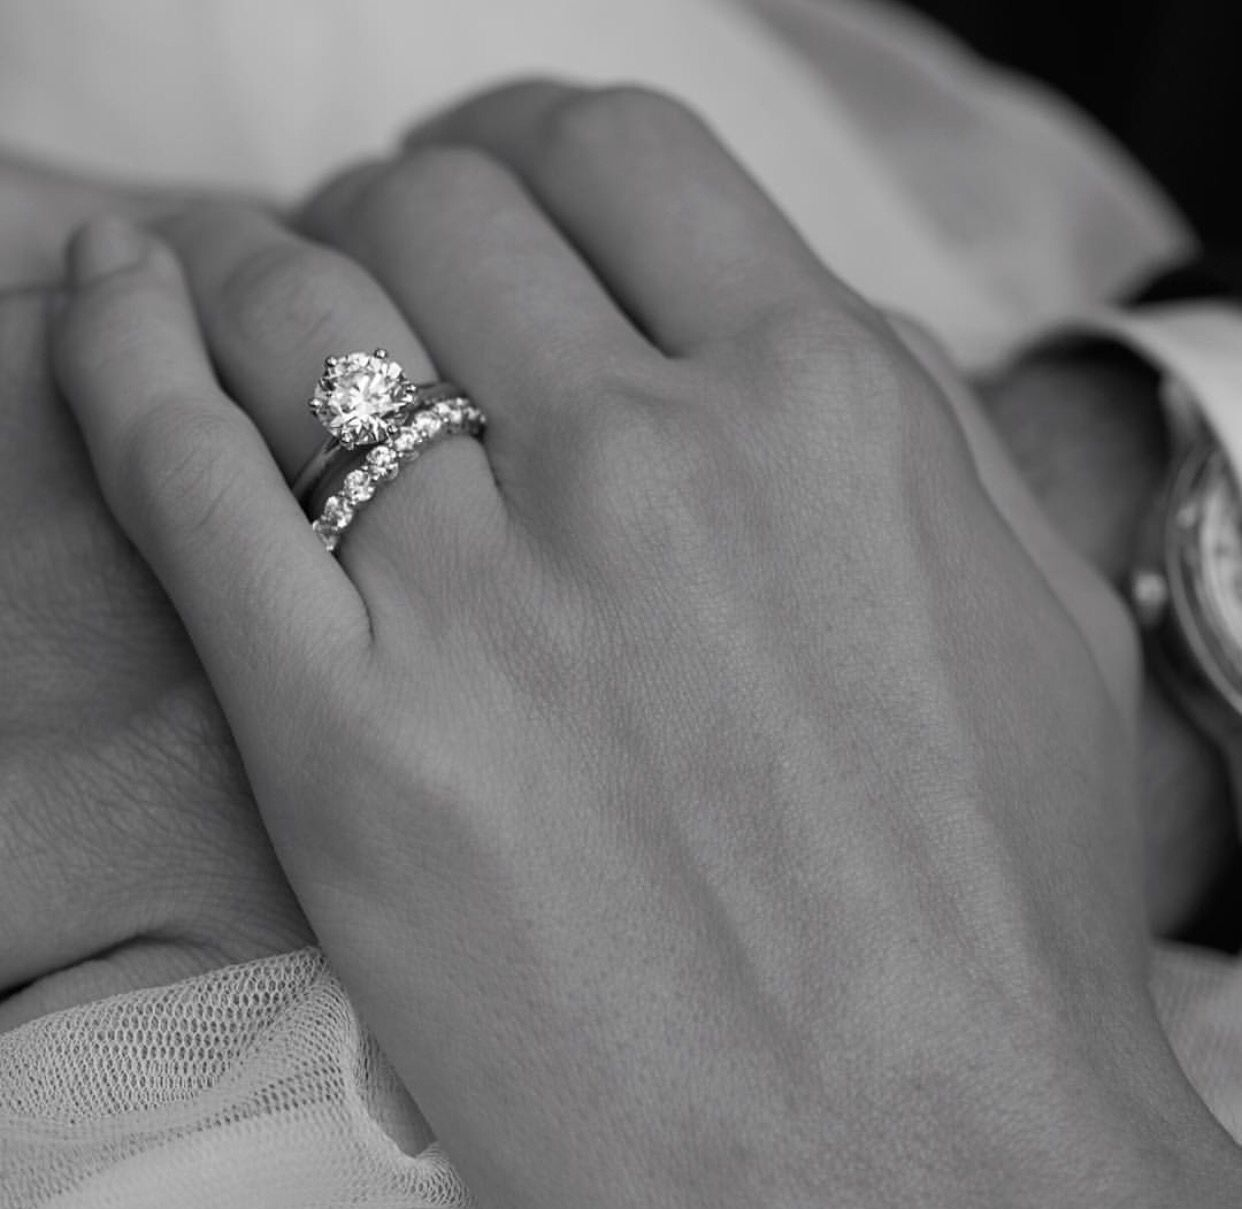 Tiffany's & Co. (With images) Tiffany wedding rings